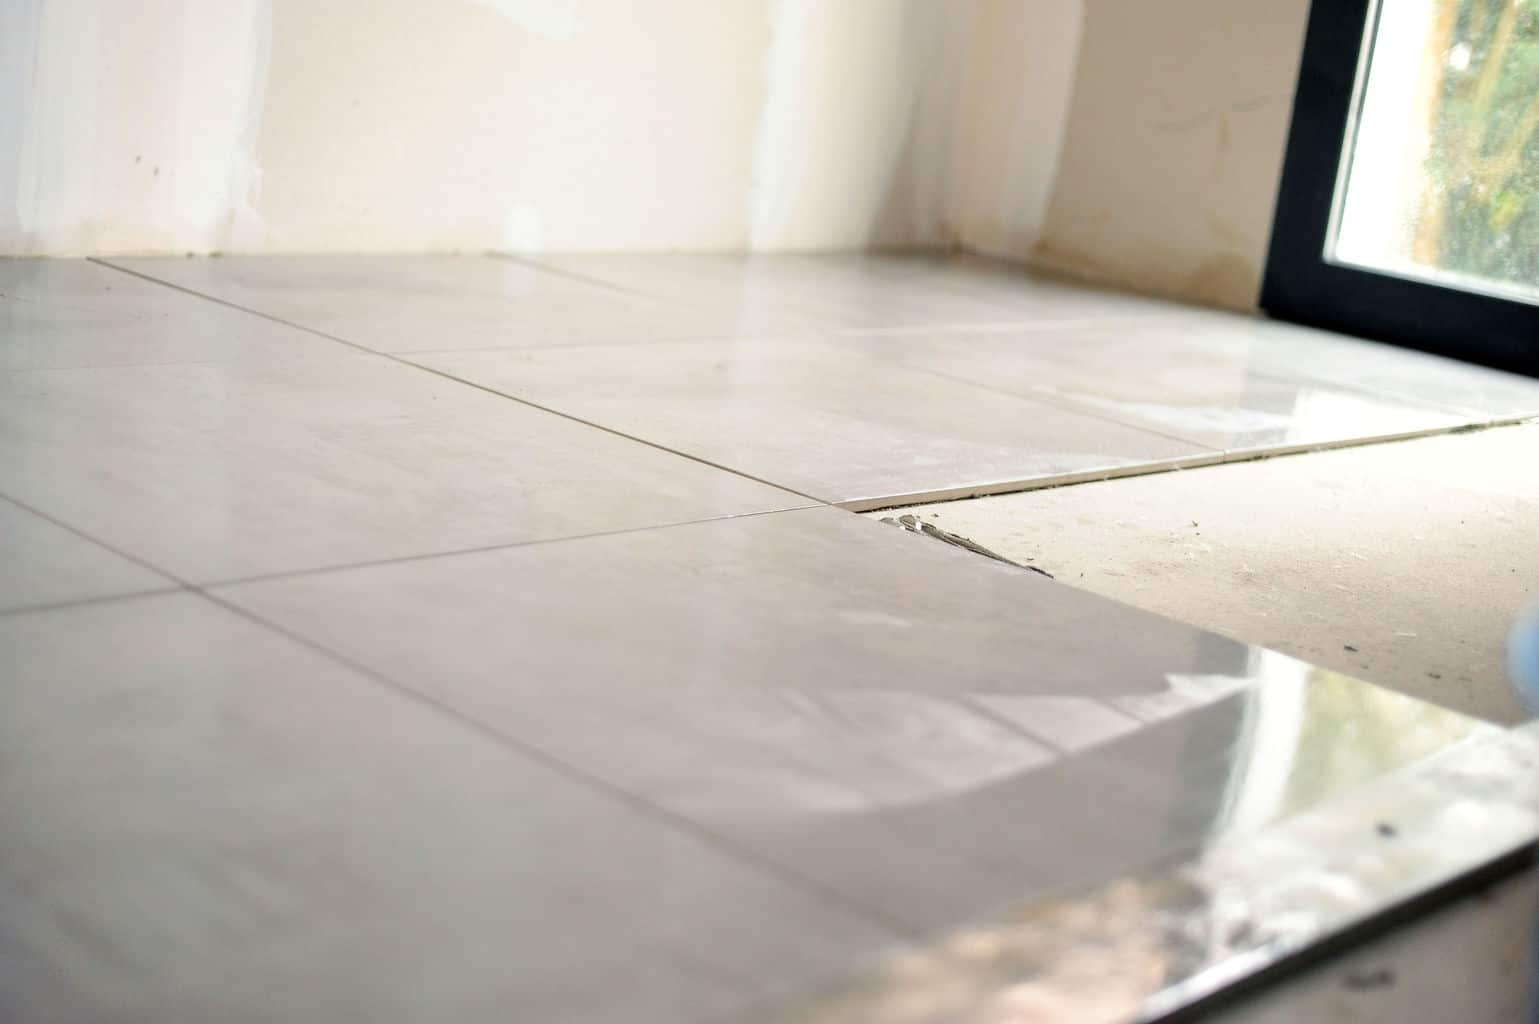 How to install ceramic floor tile on concrete diy tips it may not be the easiest to install but its not that hard either with the proper tools laying a tile floor is a manageable do it yourself project if dailygadgetfo Image collections